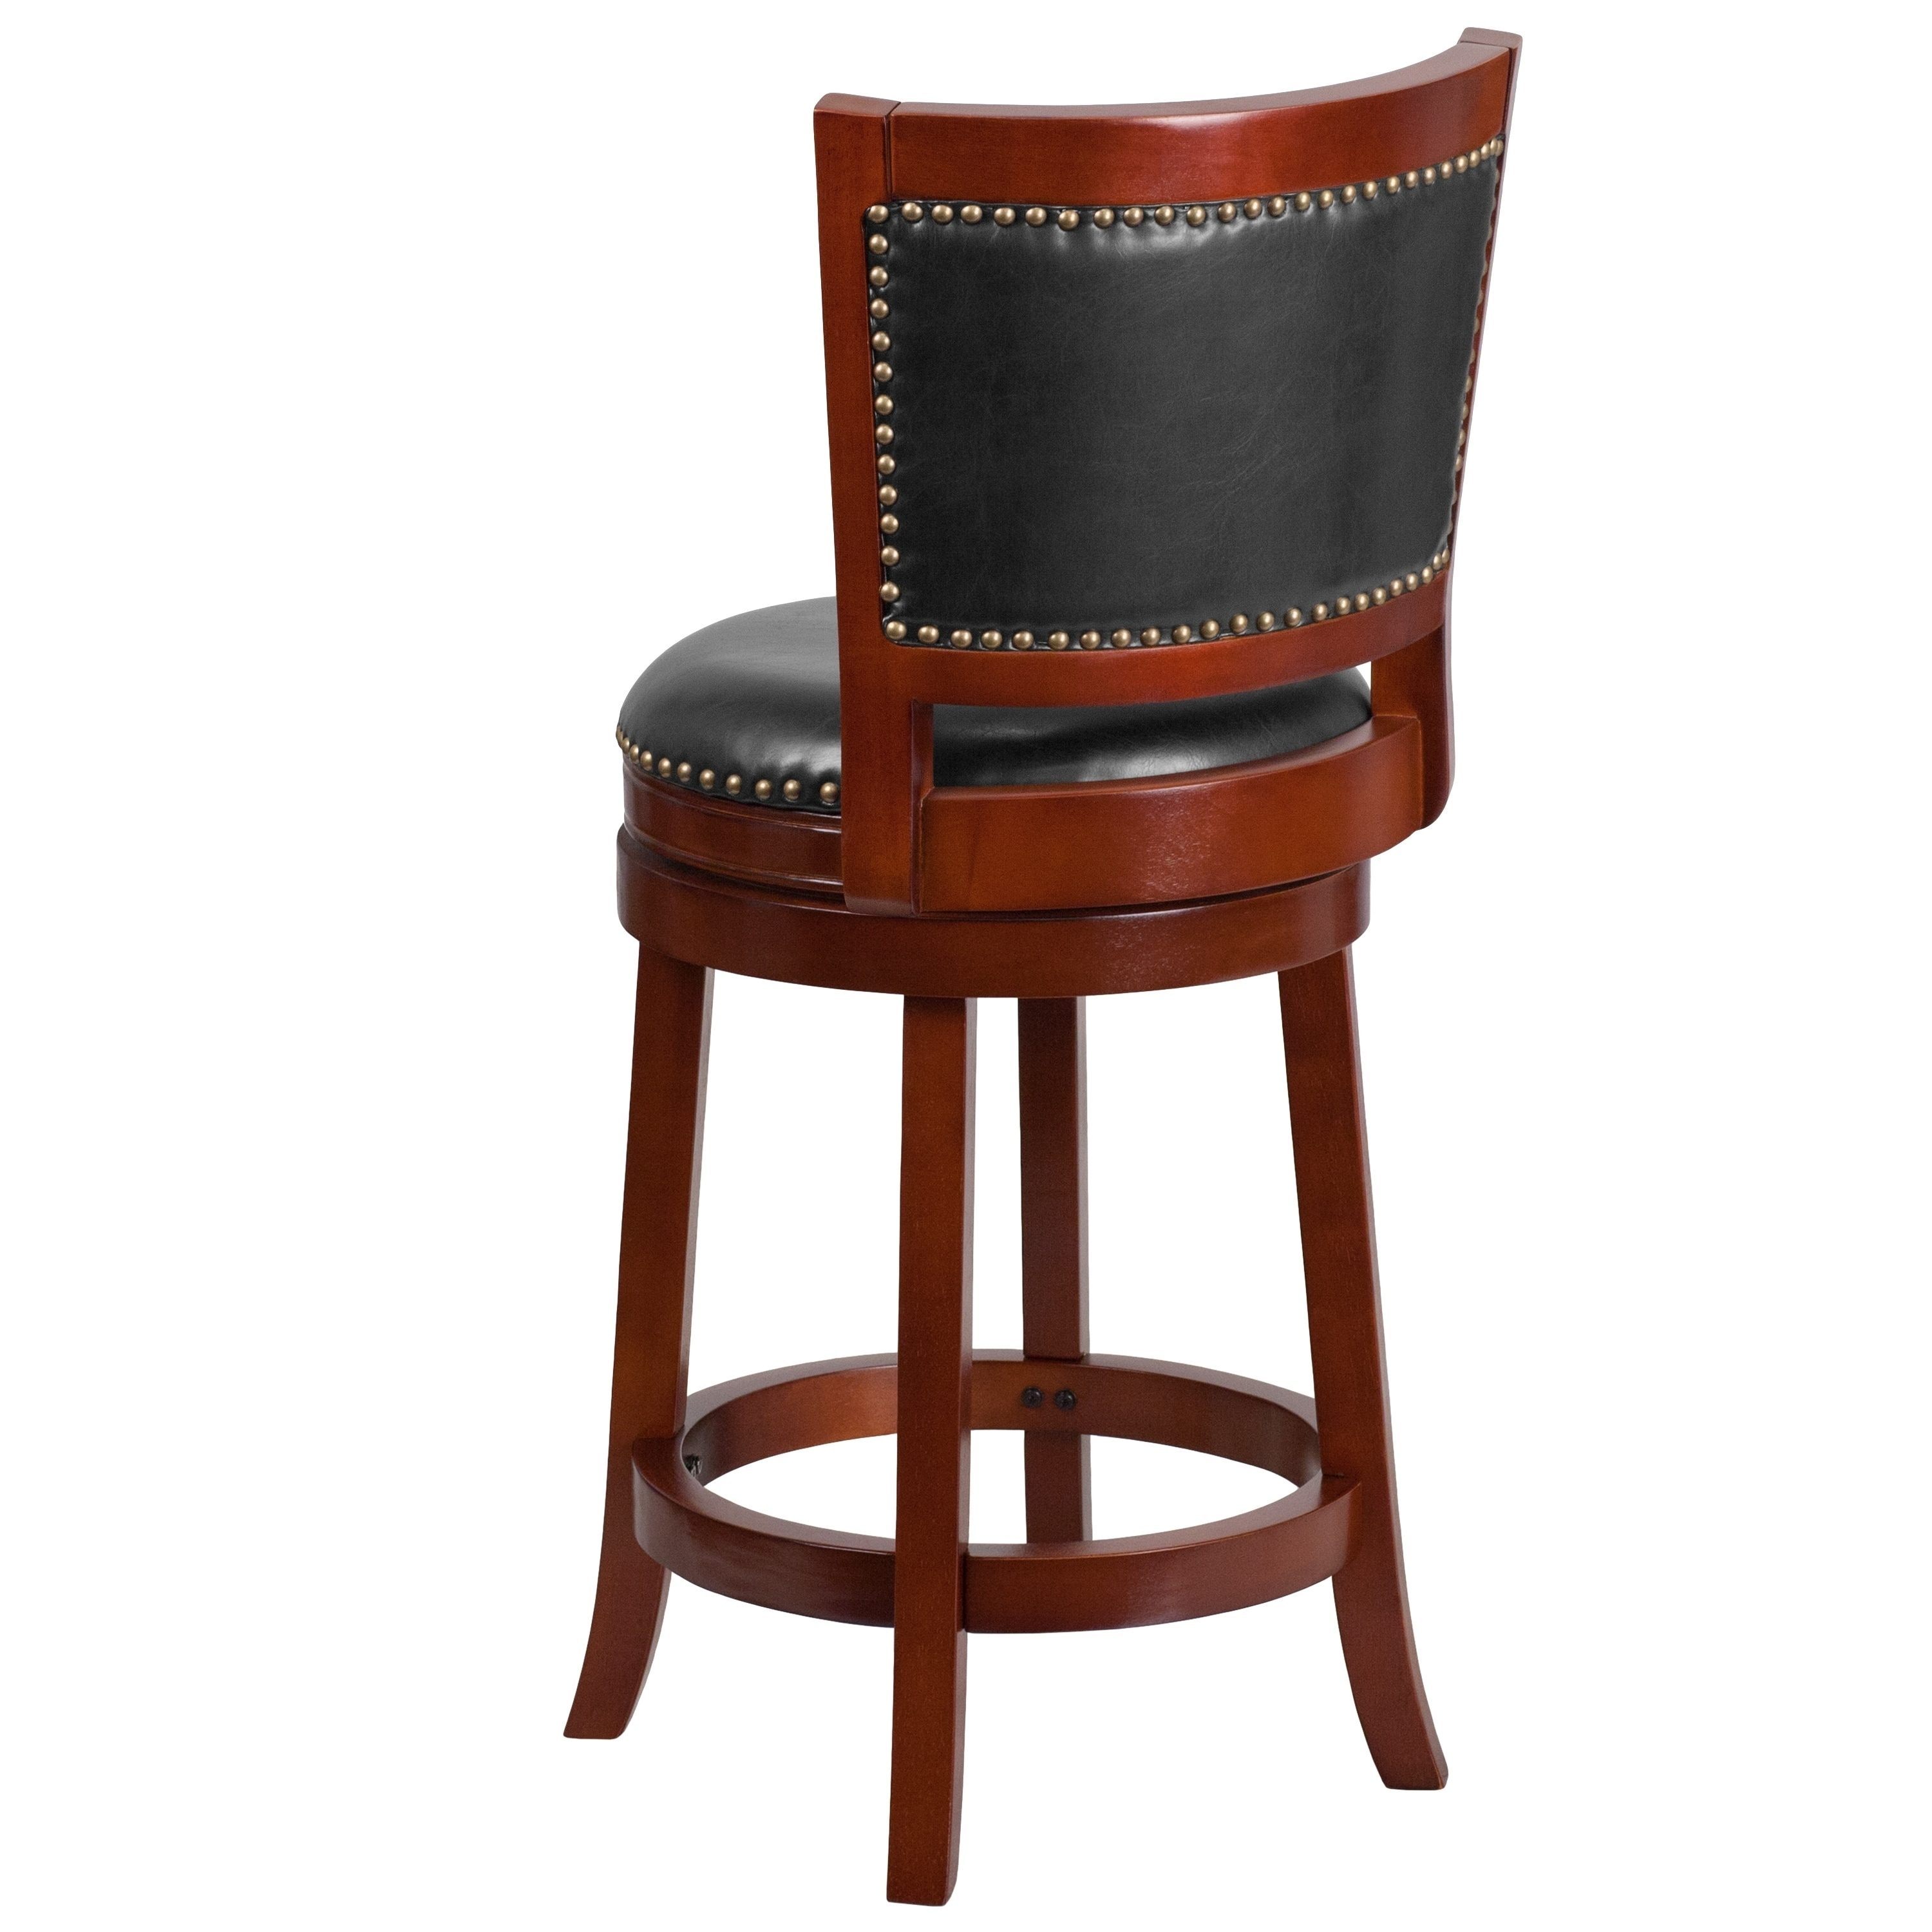 Astounding Copper Grove Blackmuir 26 Inch High Wood Counter Height Stool With Leather Swivel Seat Ocoug Best Dining Table And Chair Ideas Images Ocougorg